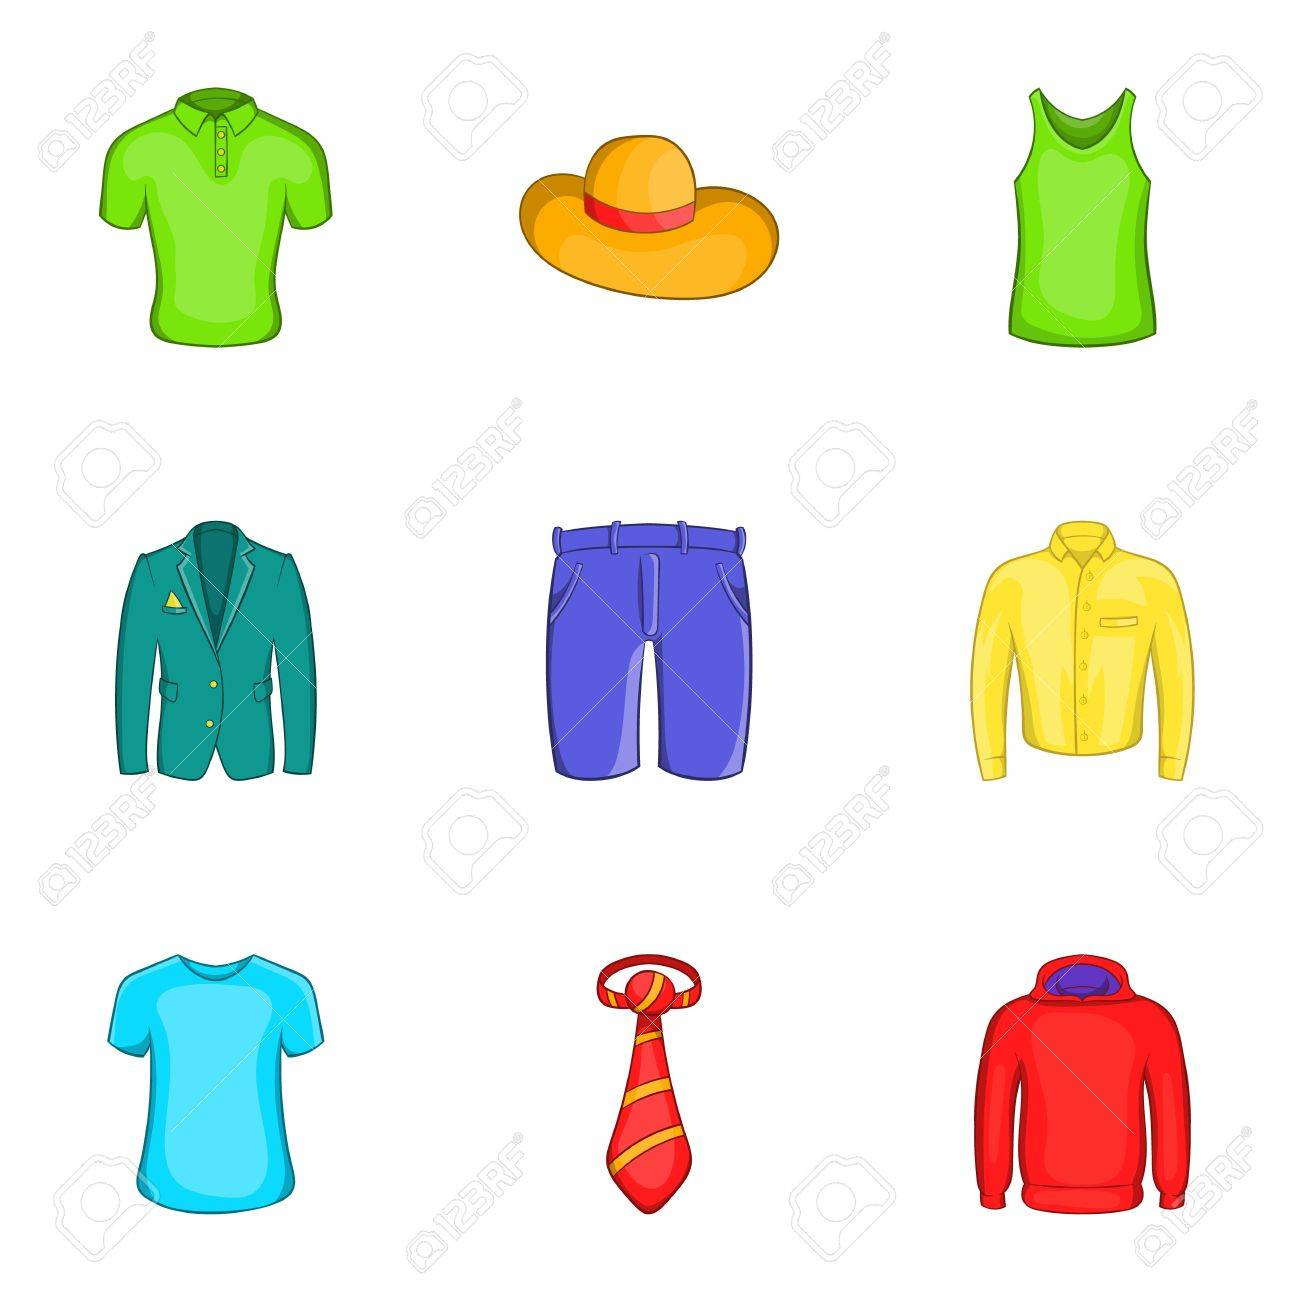 different clothes icons set cartoon illustration of 9 different